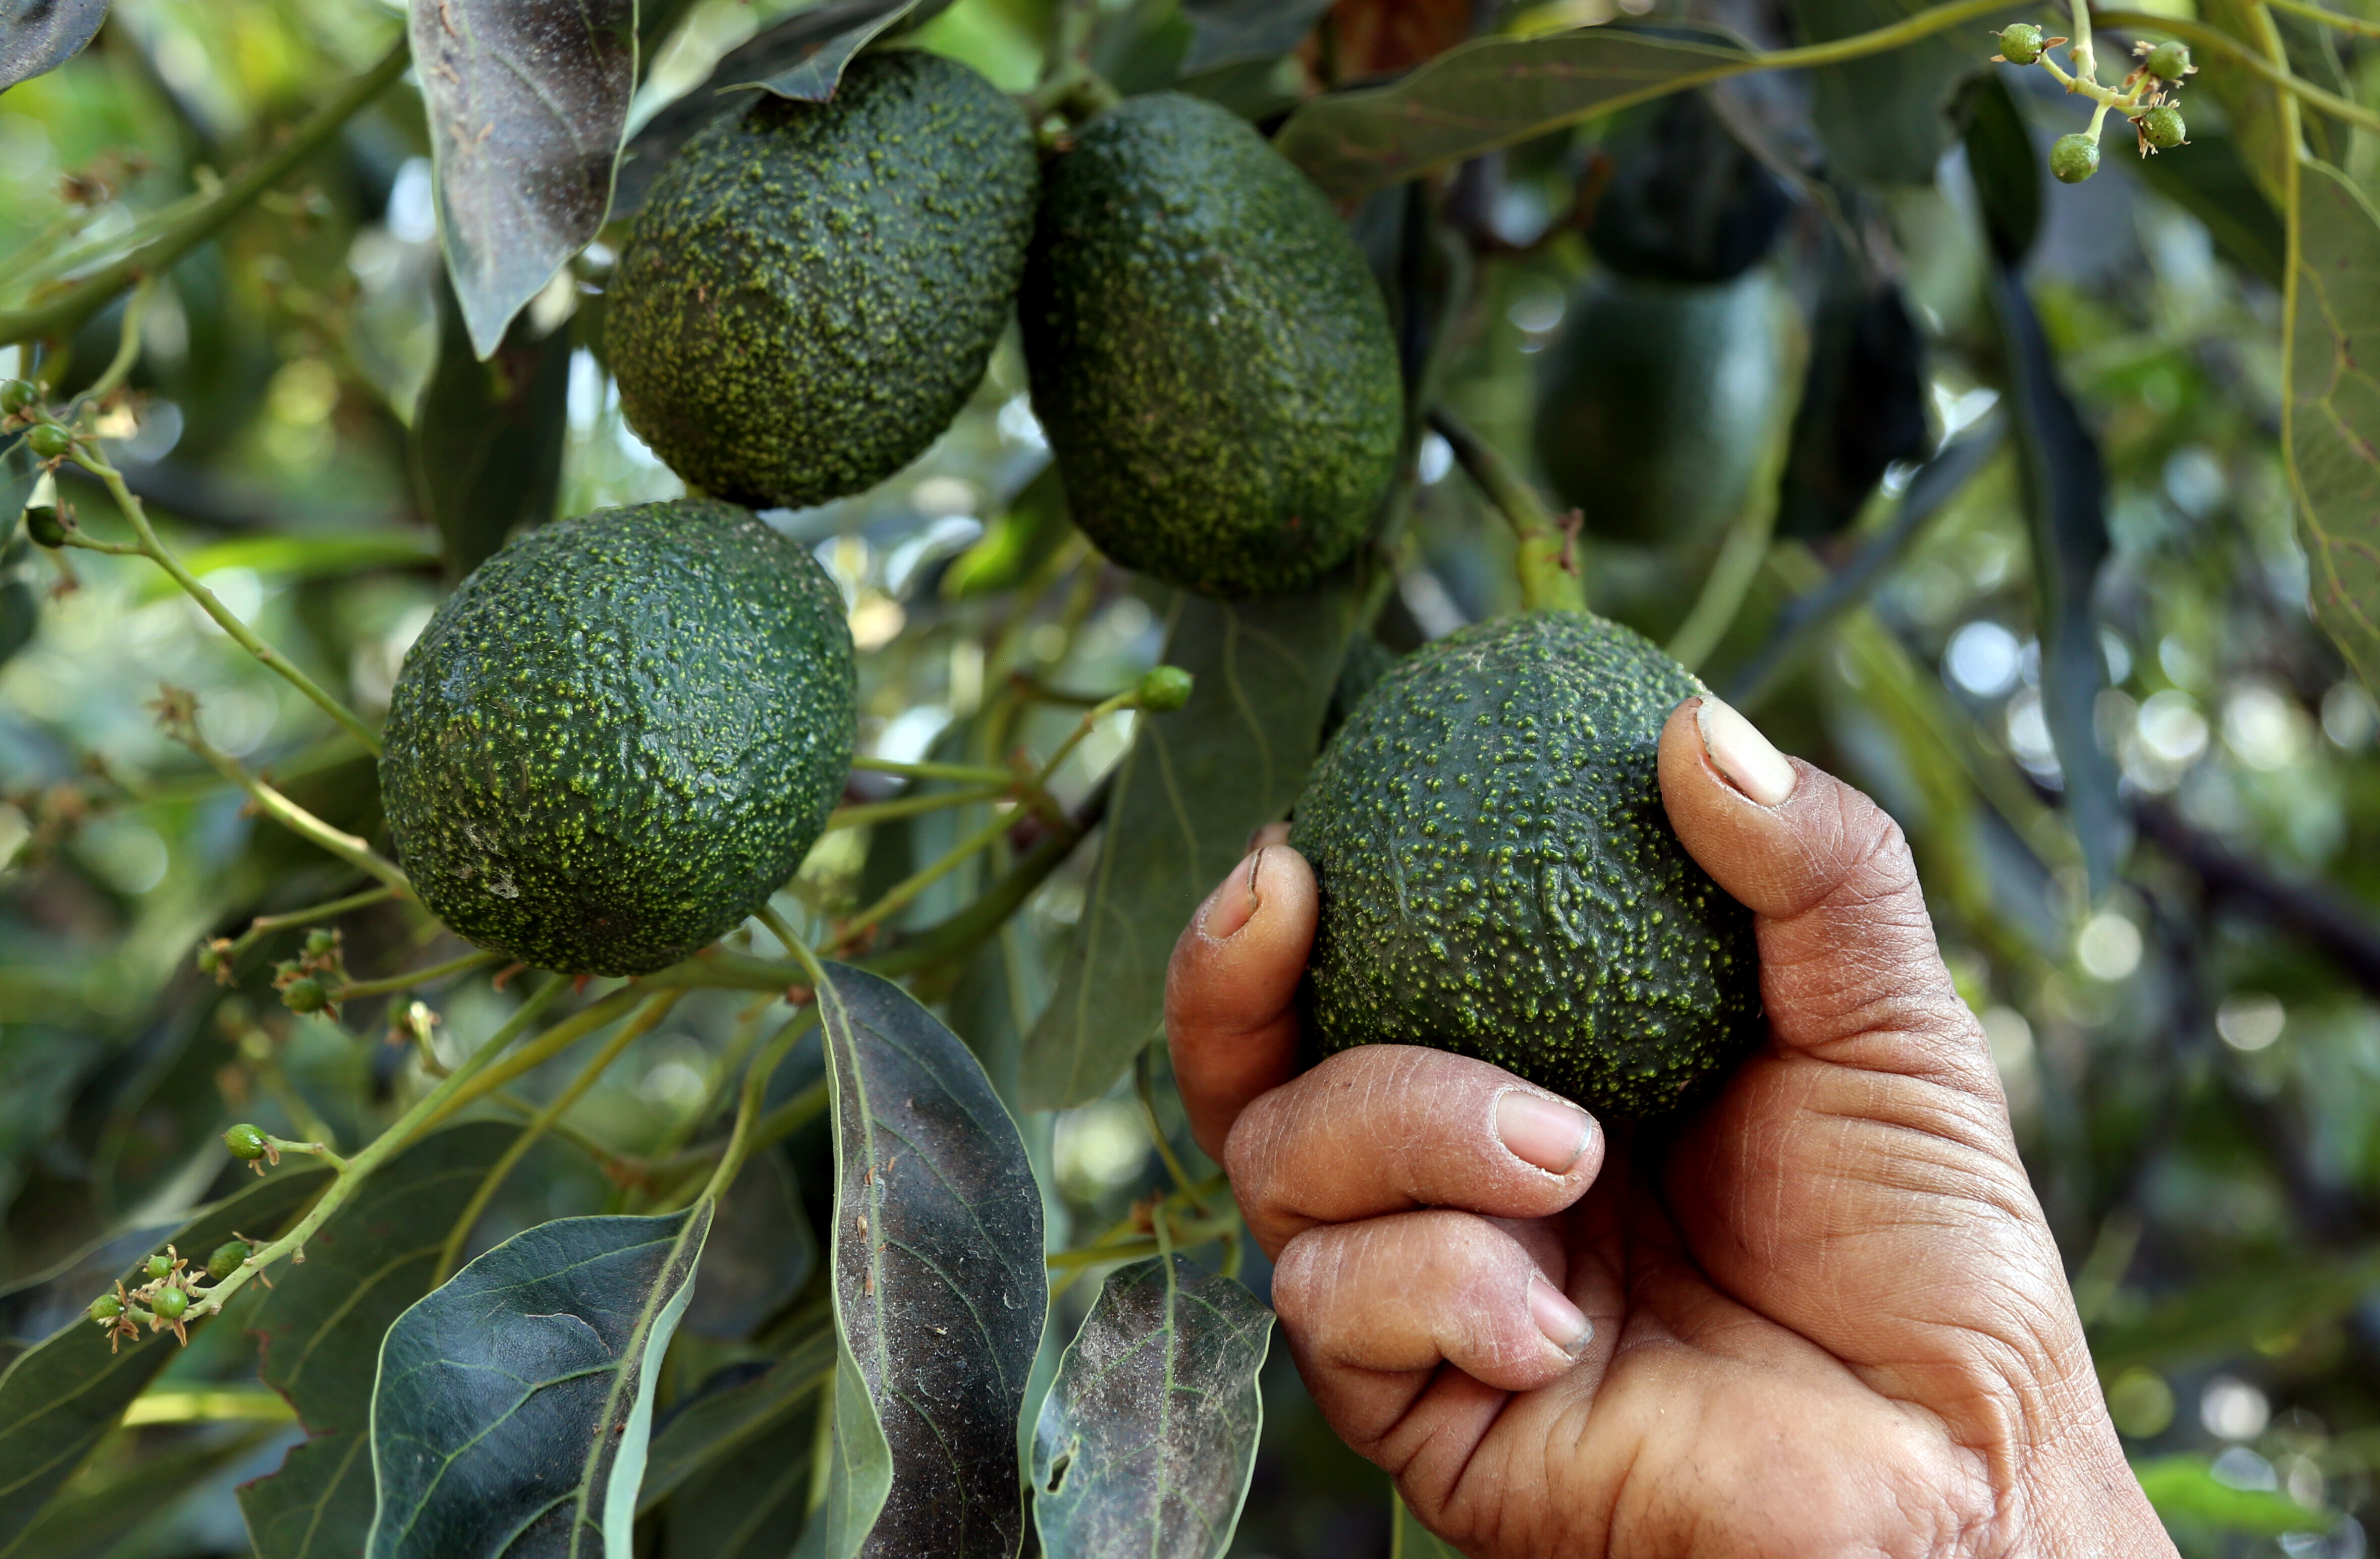 A farmer works at an avocado plantation in El Carmen ranch in the community of Tochimilco, Puebla State, Mexico, on April 5